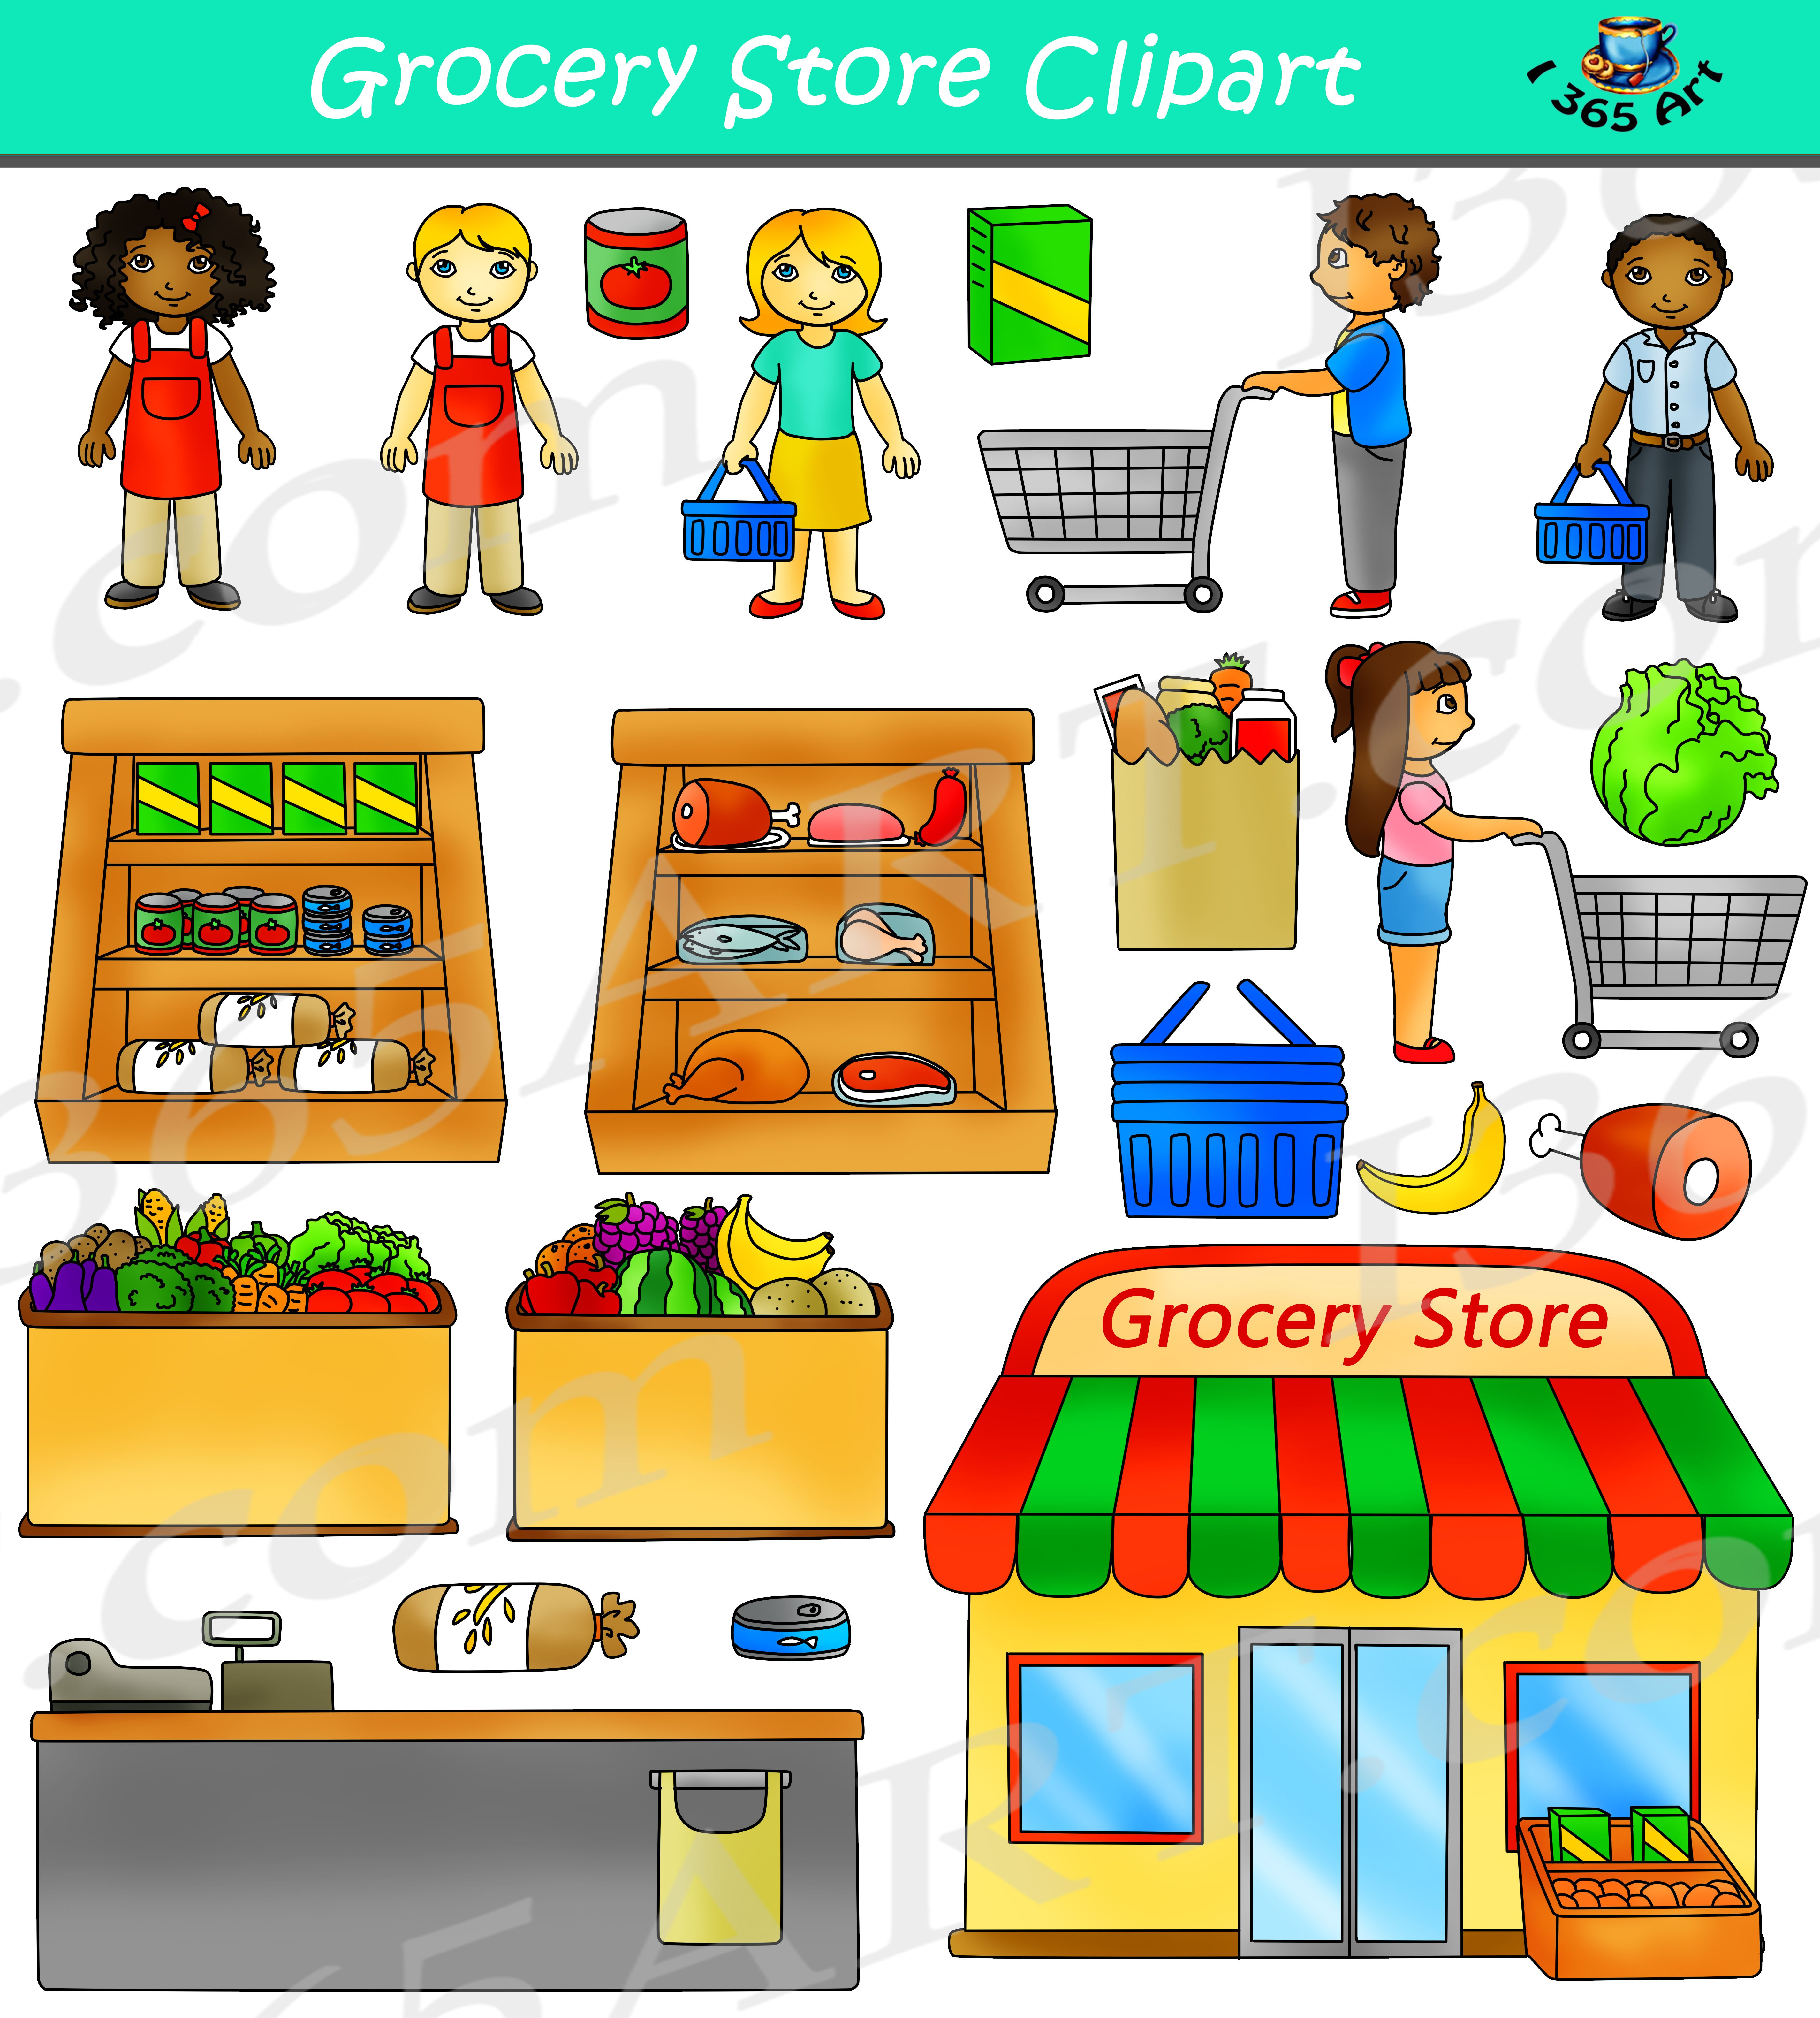 Grocery Store Clipart Commercial Clipart 4 School Shopping Clipart Clip Art Grocery Store